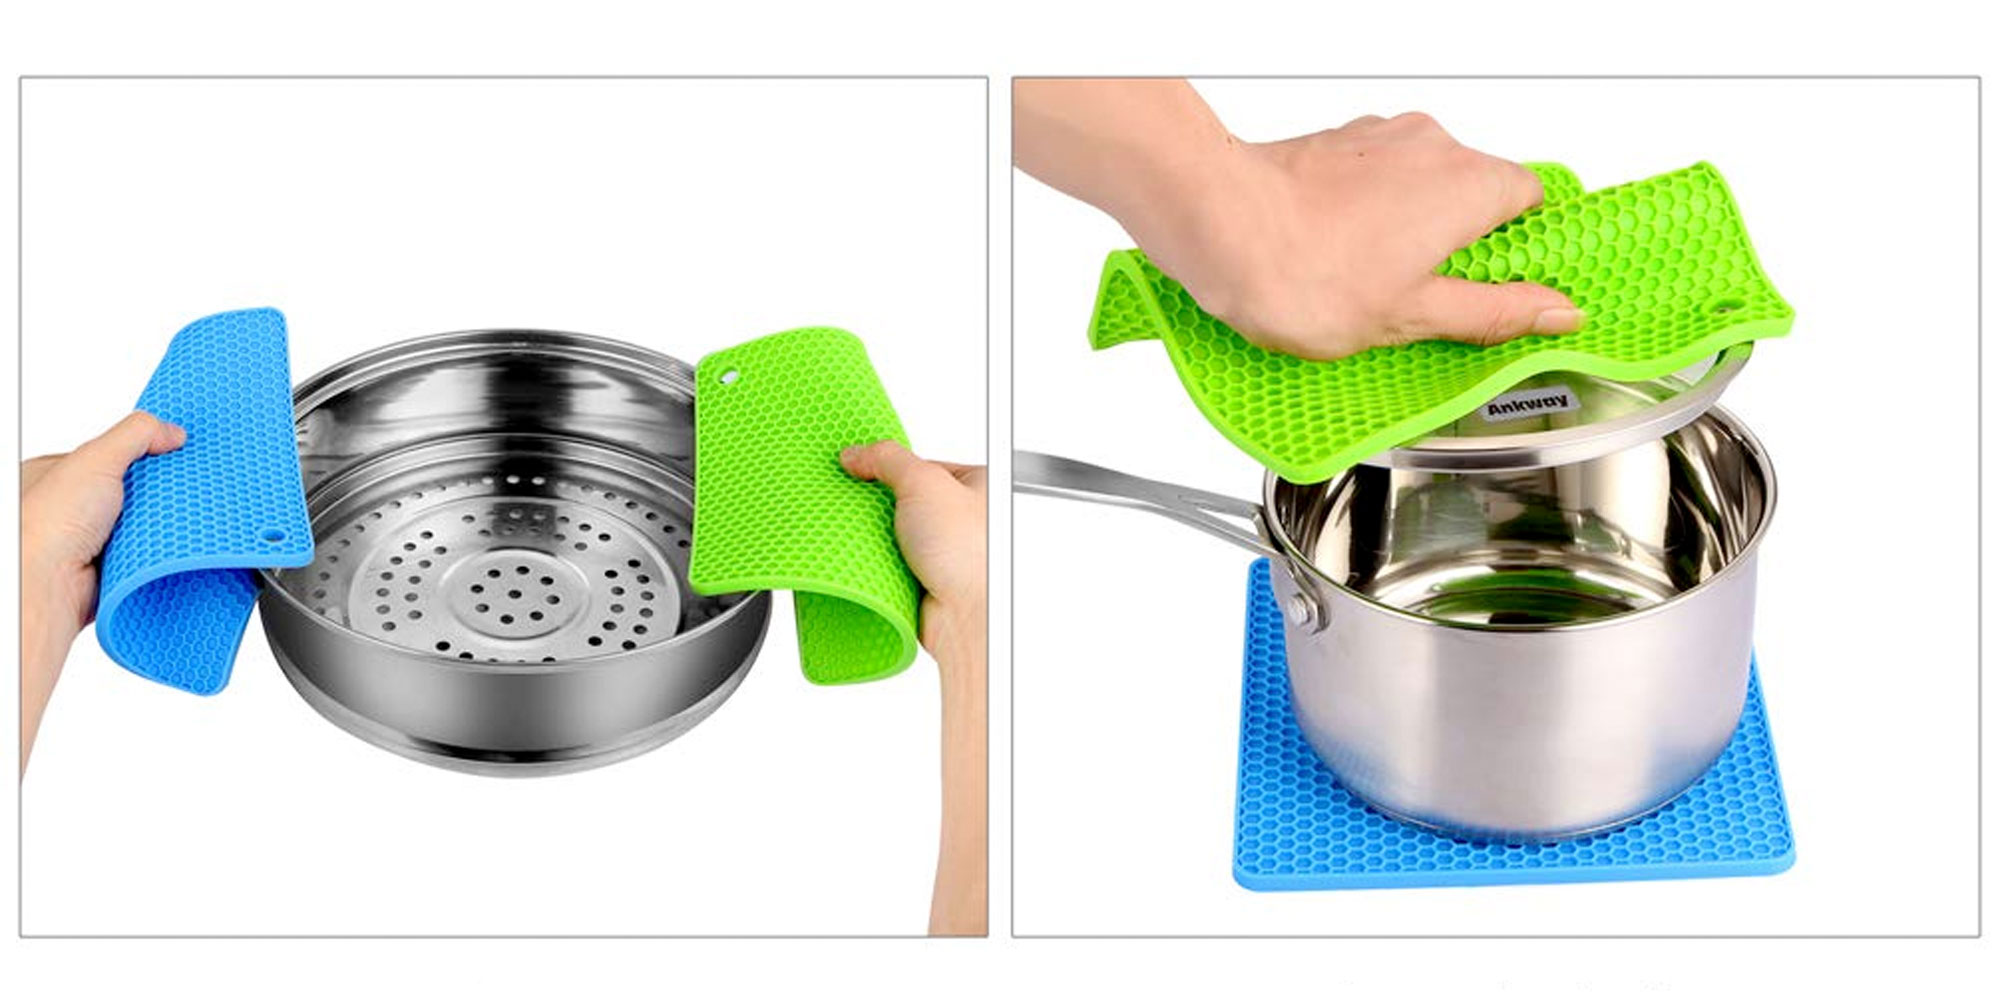 Never worry about hot pots again w/ this 4-pack of silicone grips & trivets for $9 Prime shipped